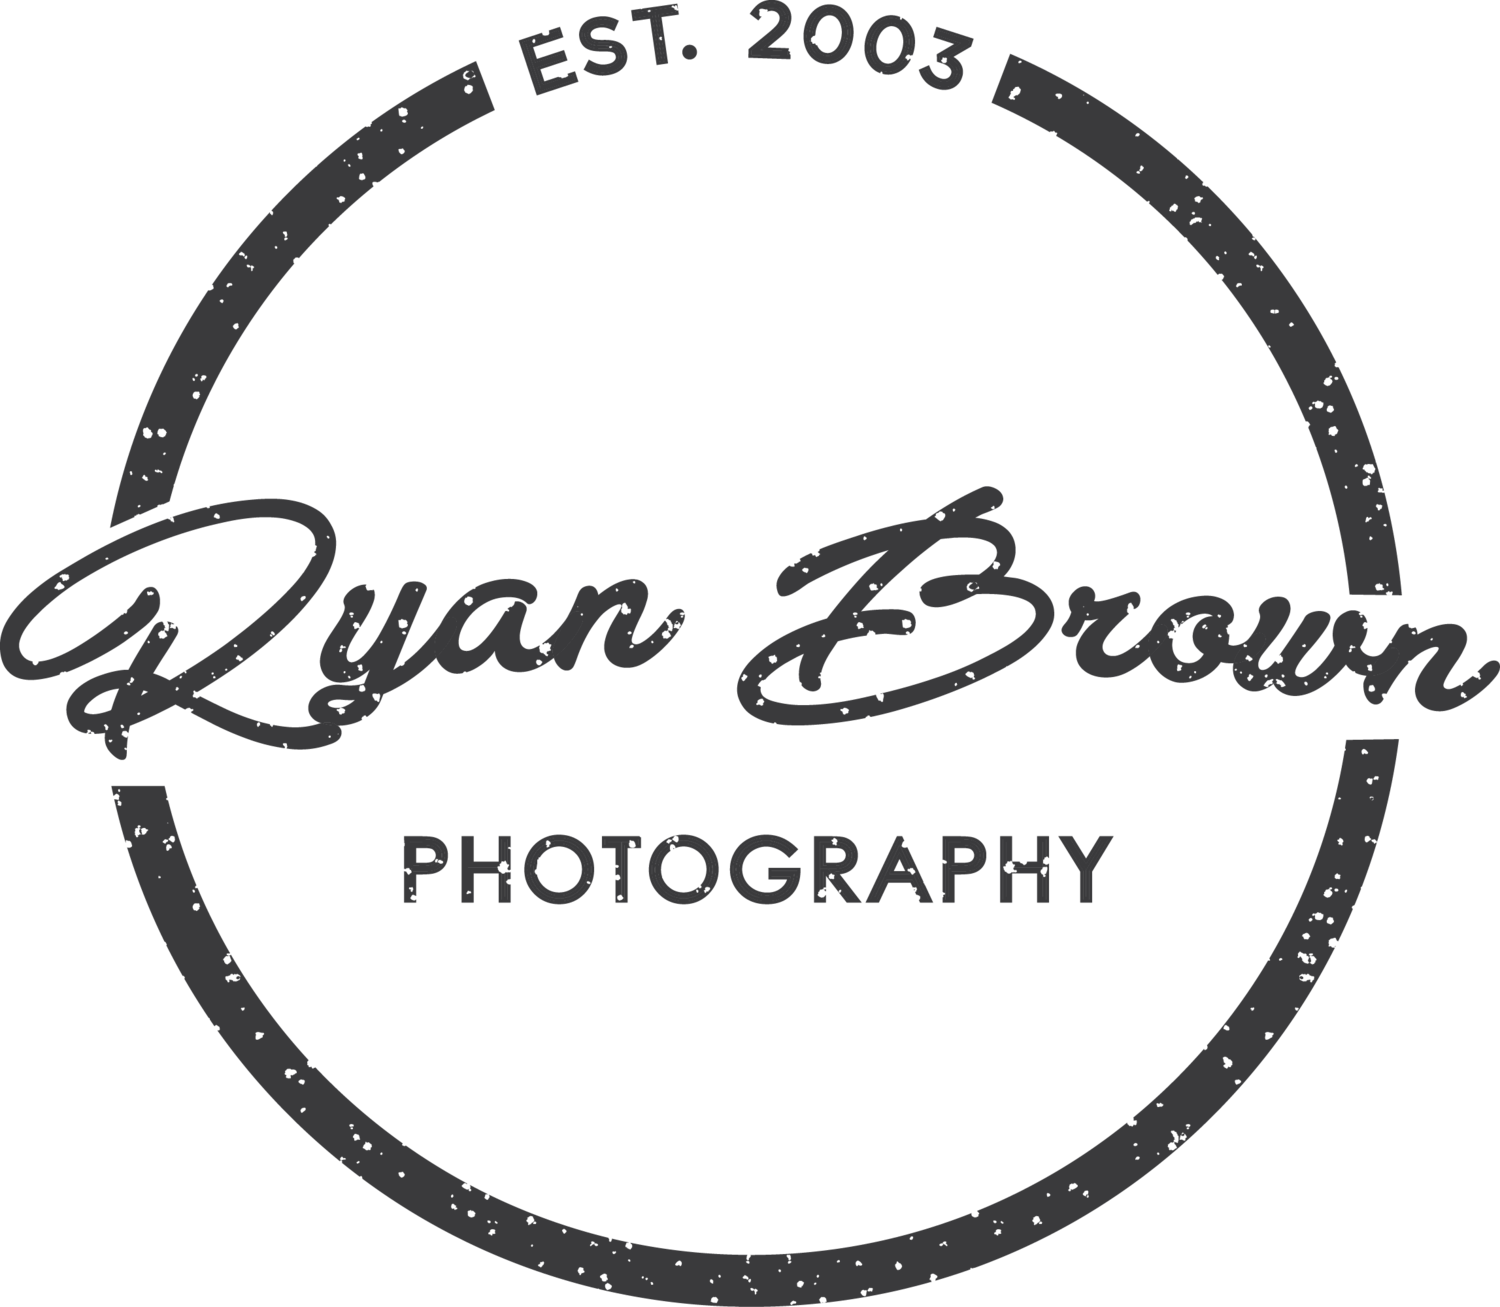 Ryan Brown Photography